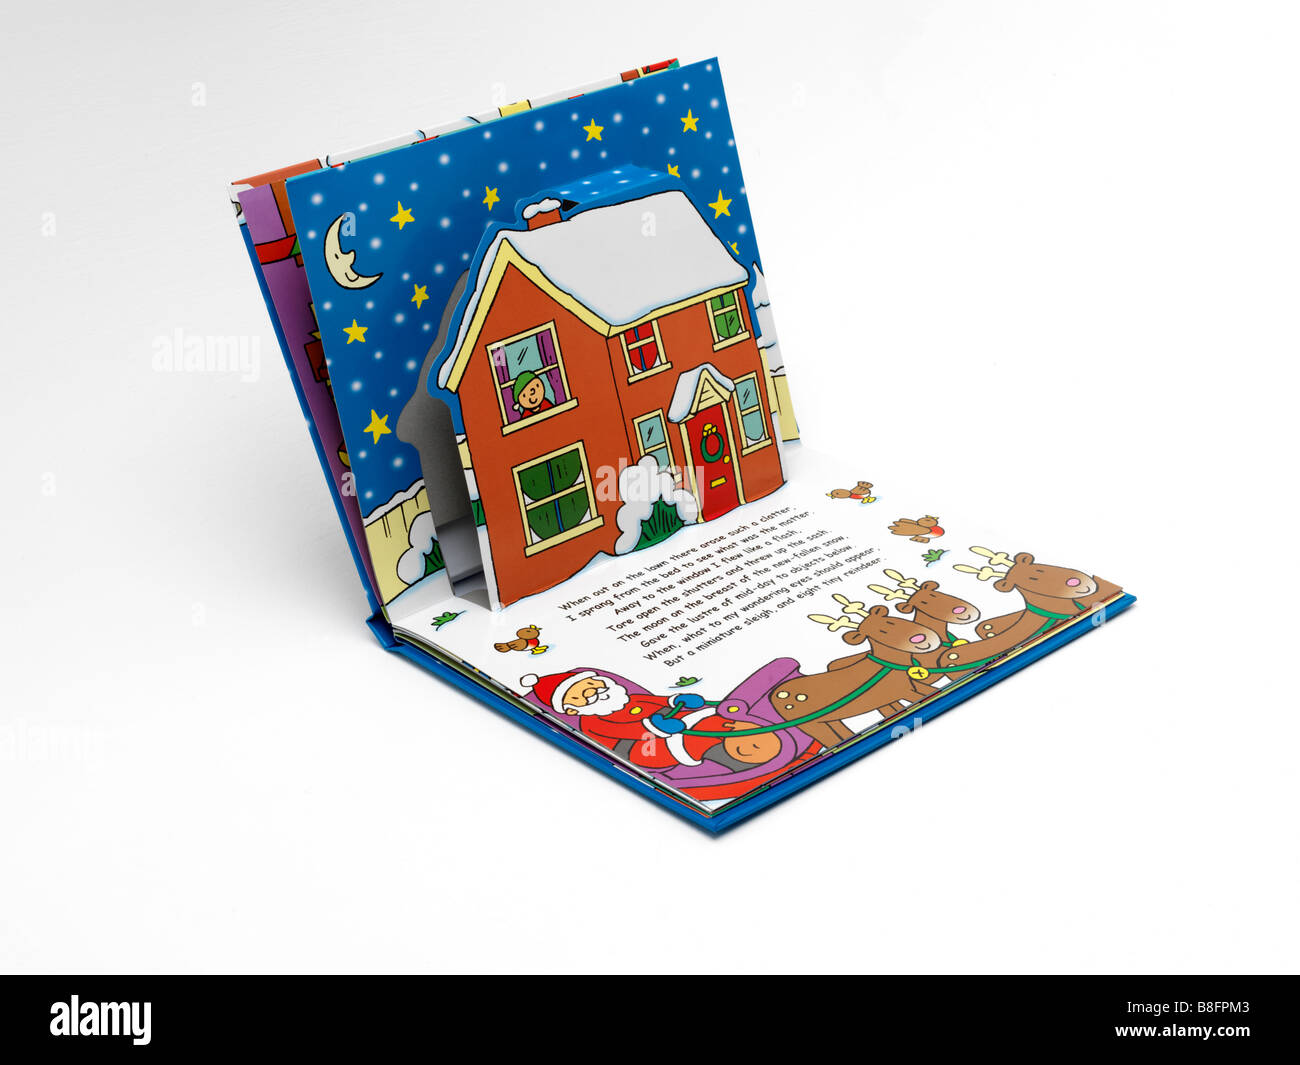 pop up book stockfotos pop up book bilder alamy. Black Bedroom Furniture Sets. Home Design Ideas